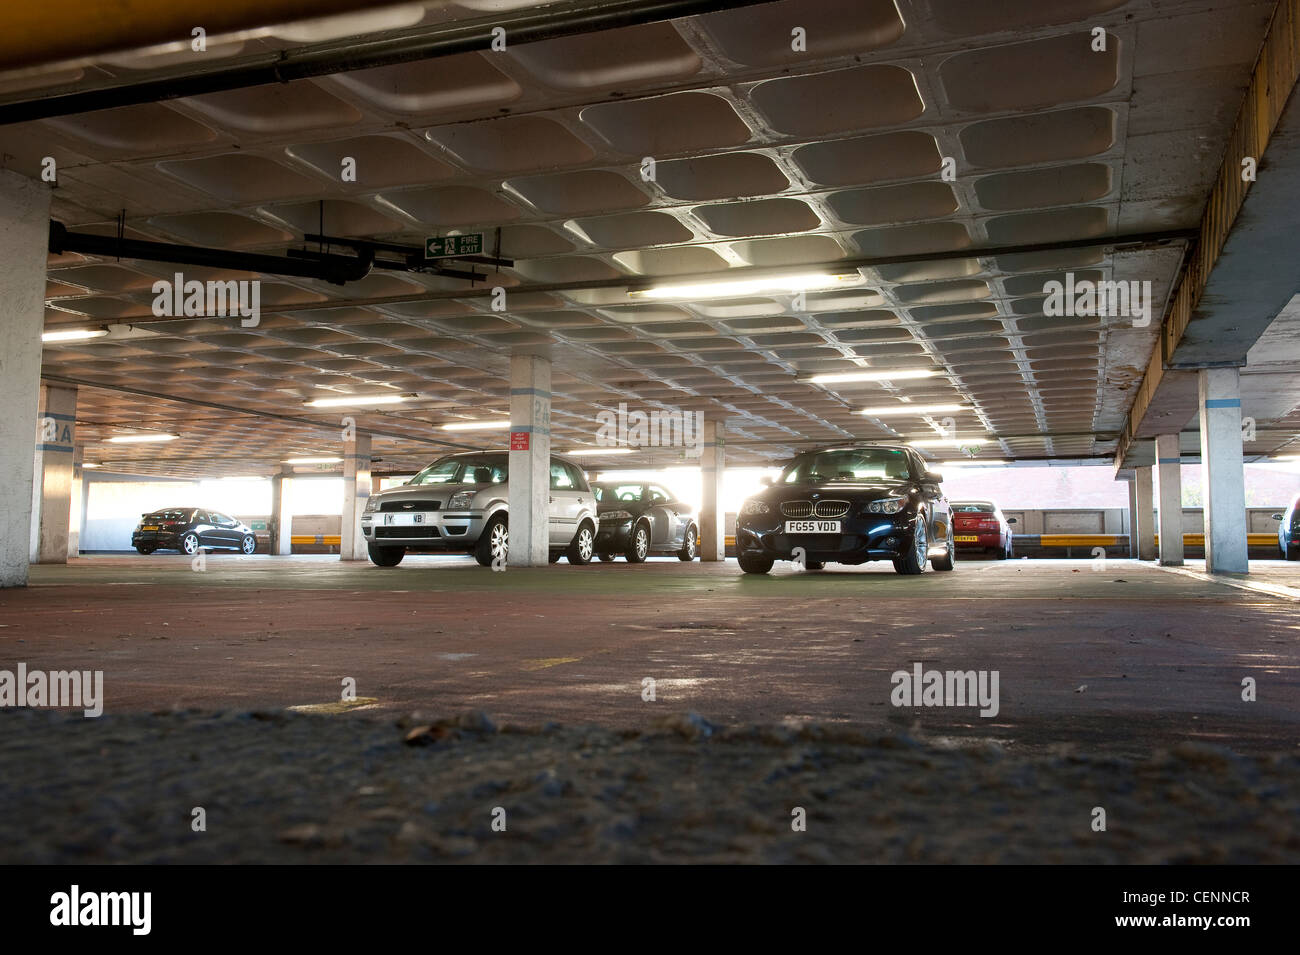 Cars parked in a multi-storey car park in England. - Stock Image